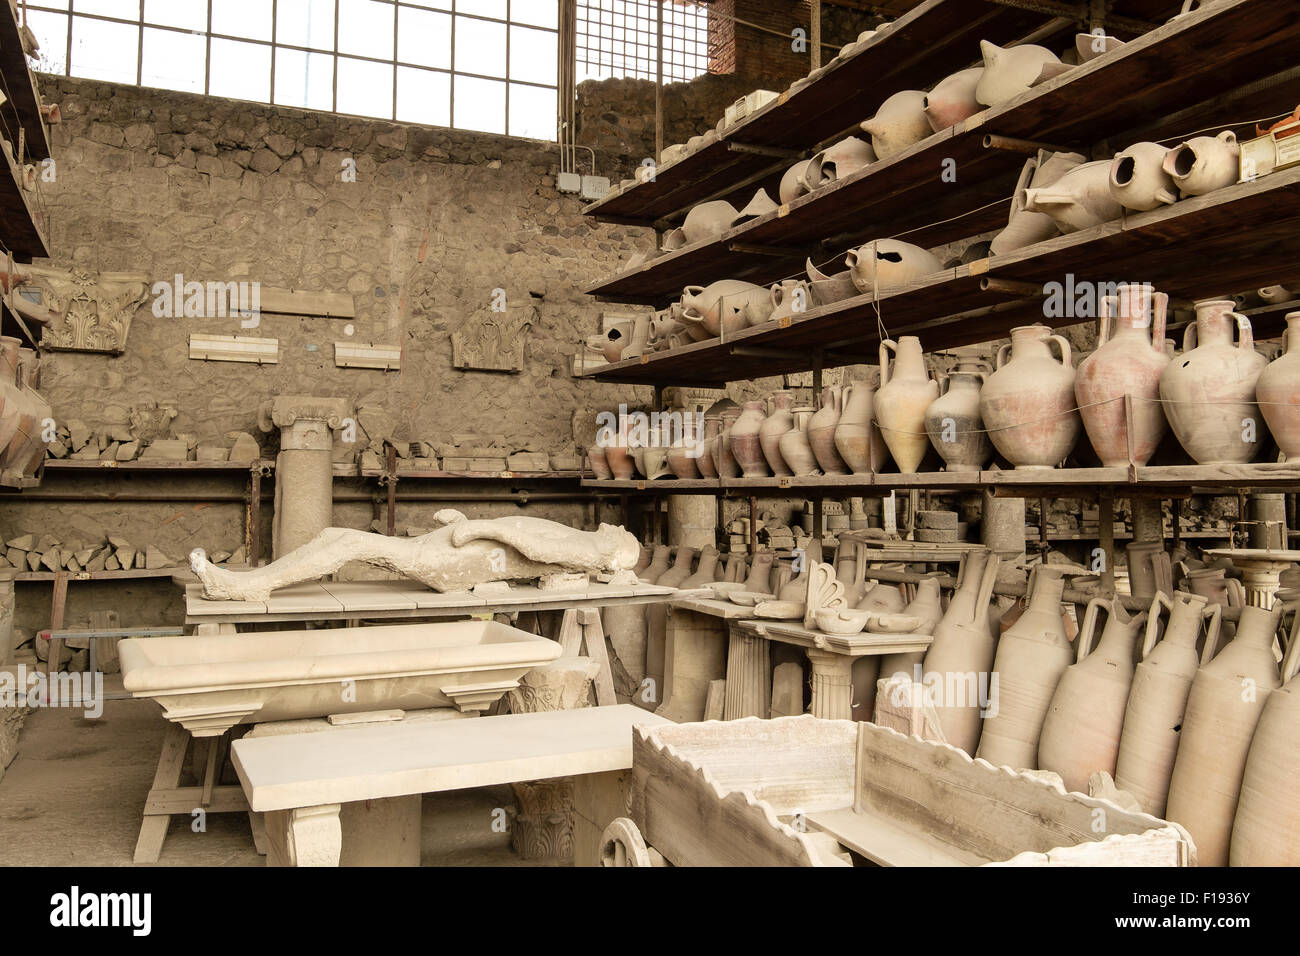 Pots and other artifacts from Pompeii in storage and on display on shelving - Stock Image